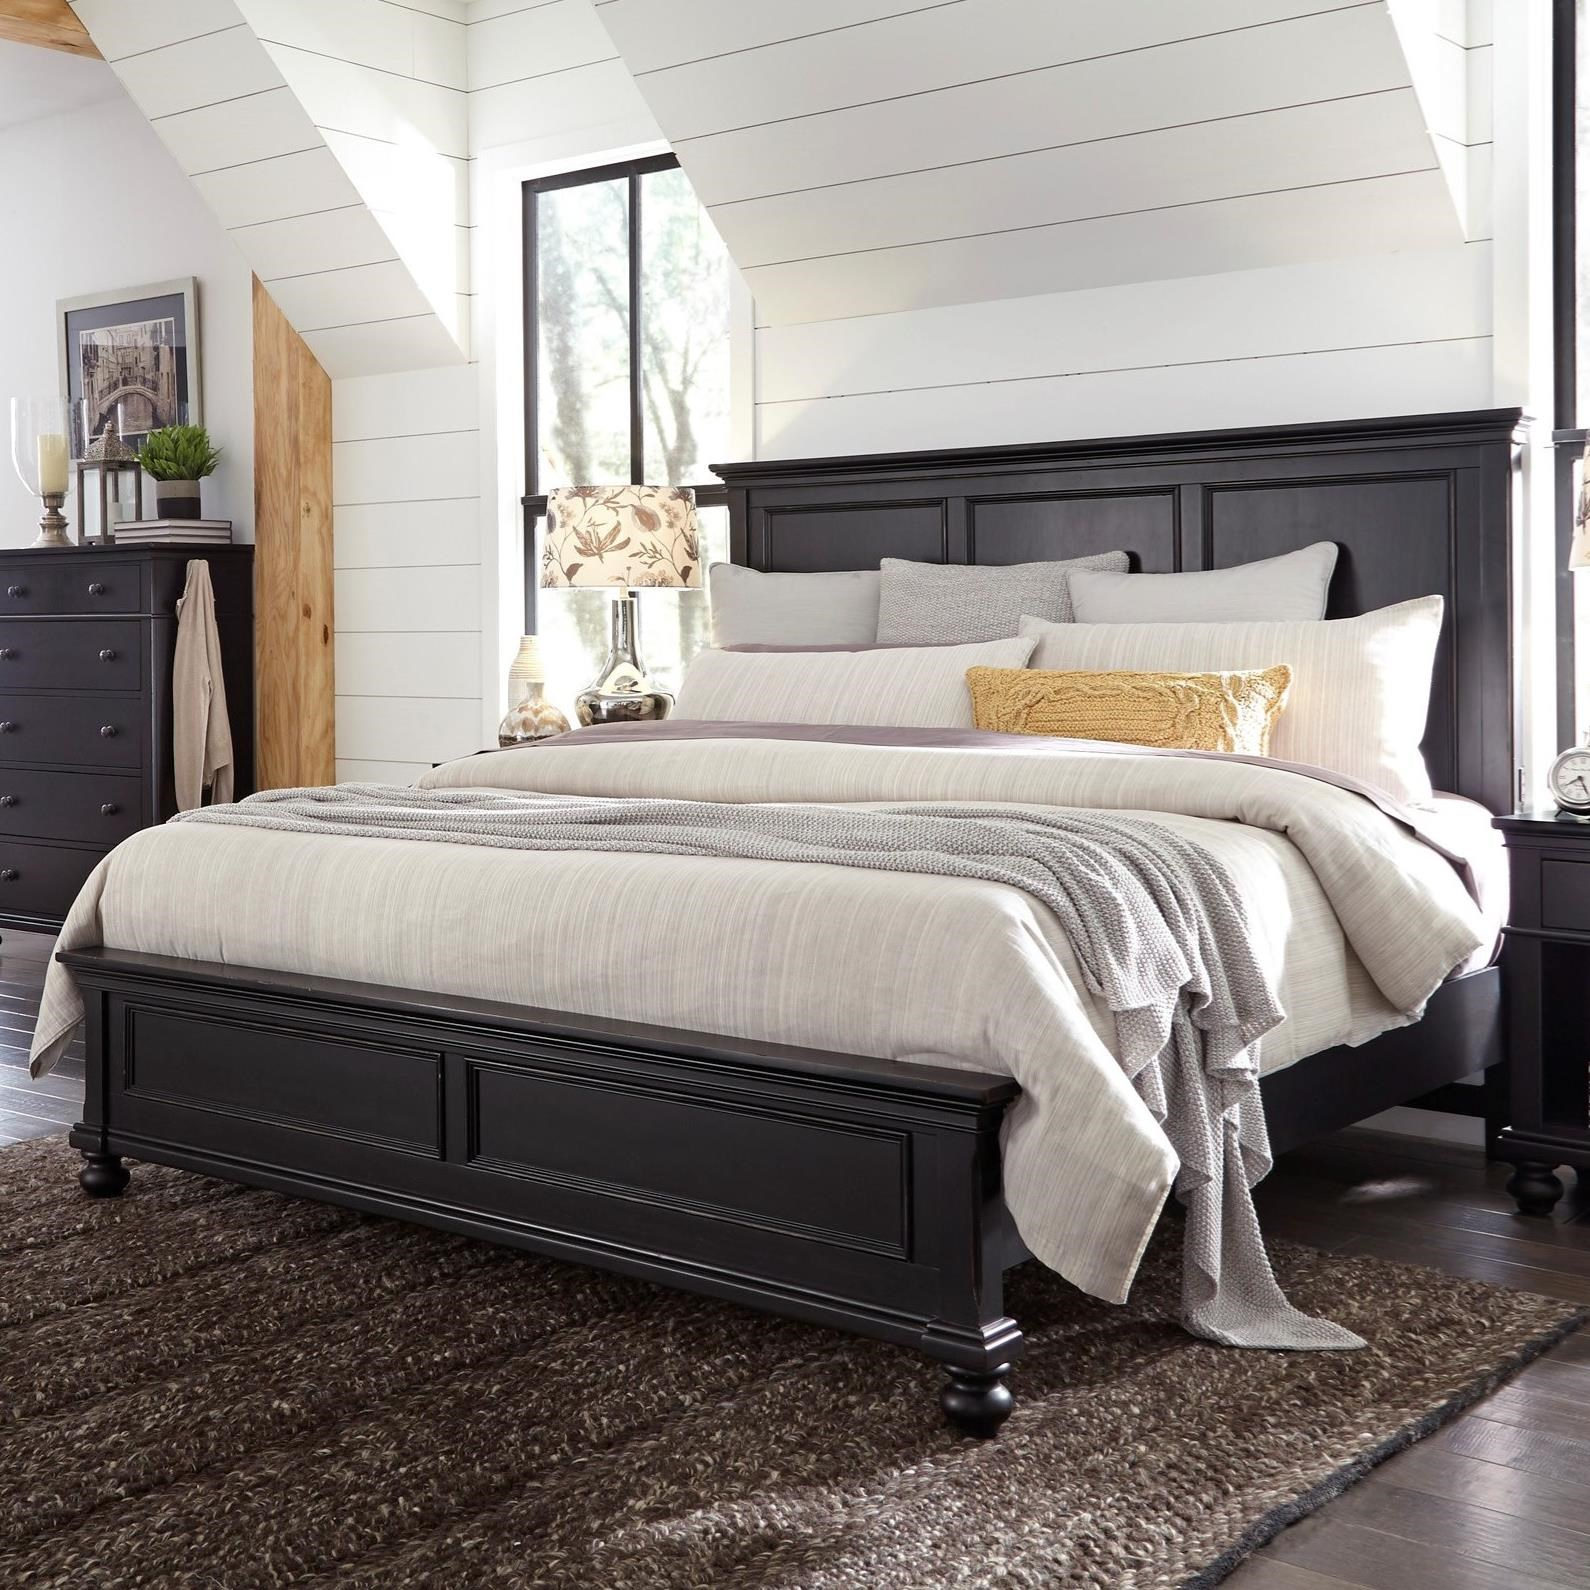 Oakford Oakford King Panel Bed by Aspenhome at Morris Home